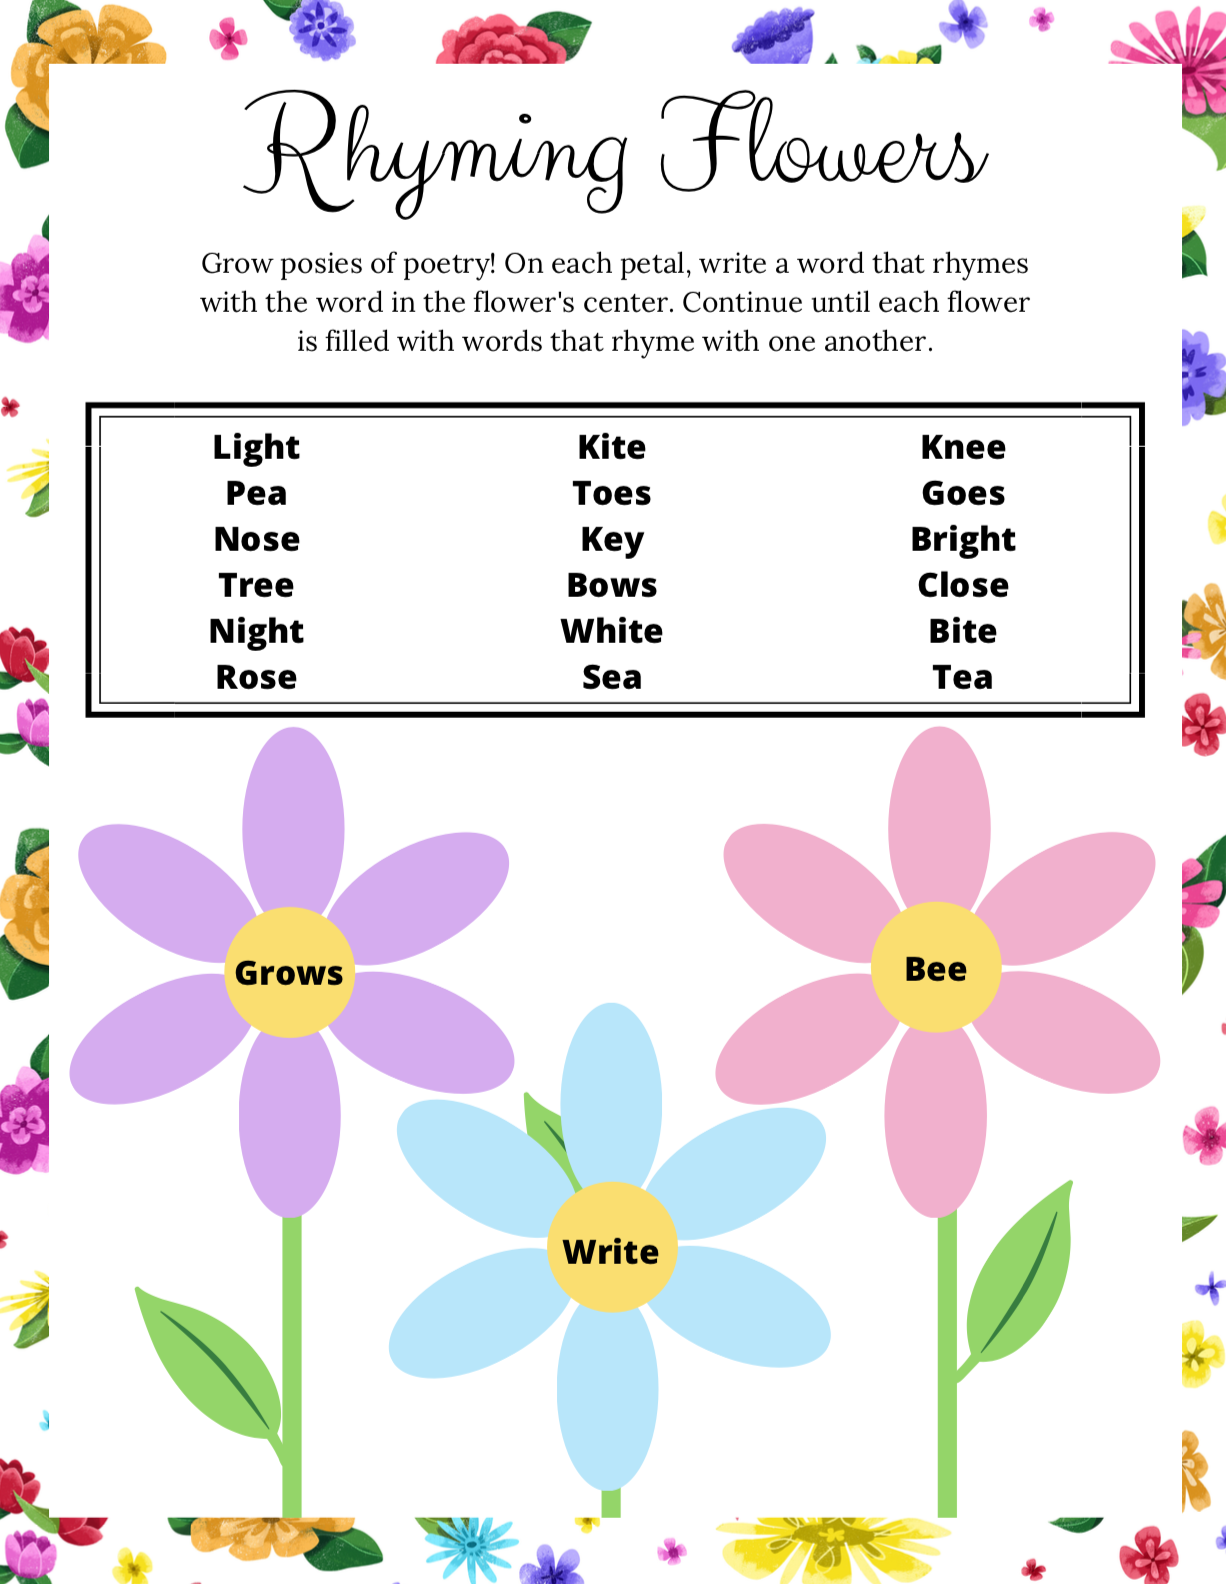 Poppy & Posie's Rhyming Flowers Game - The Blossom Shoppe